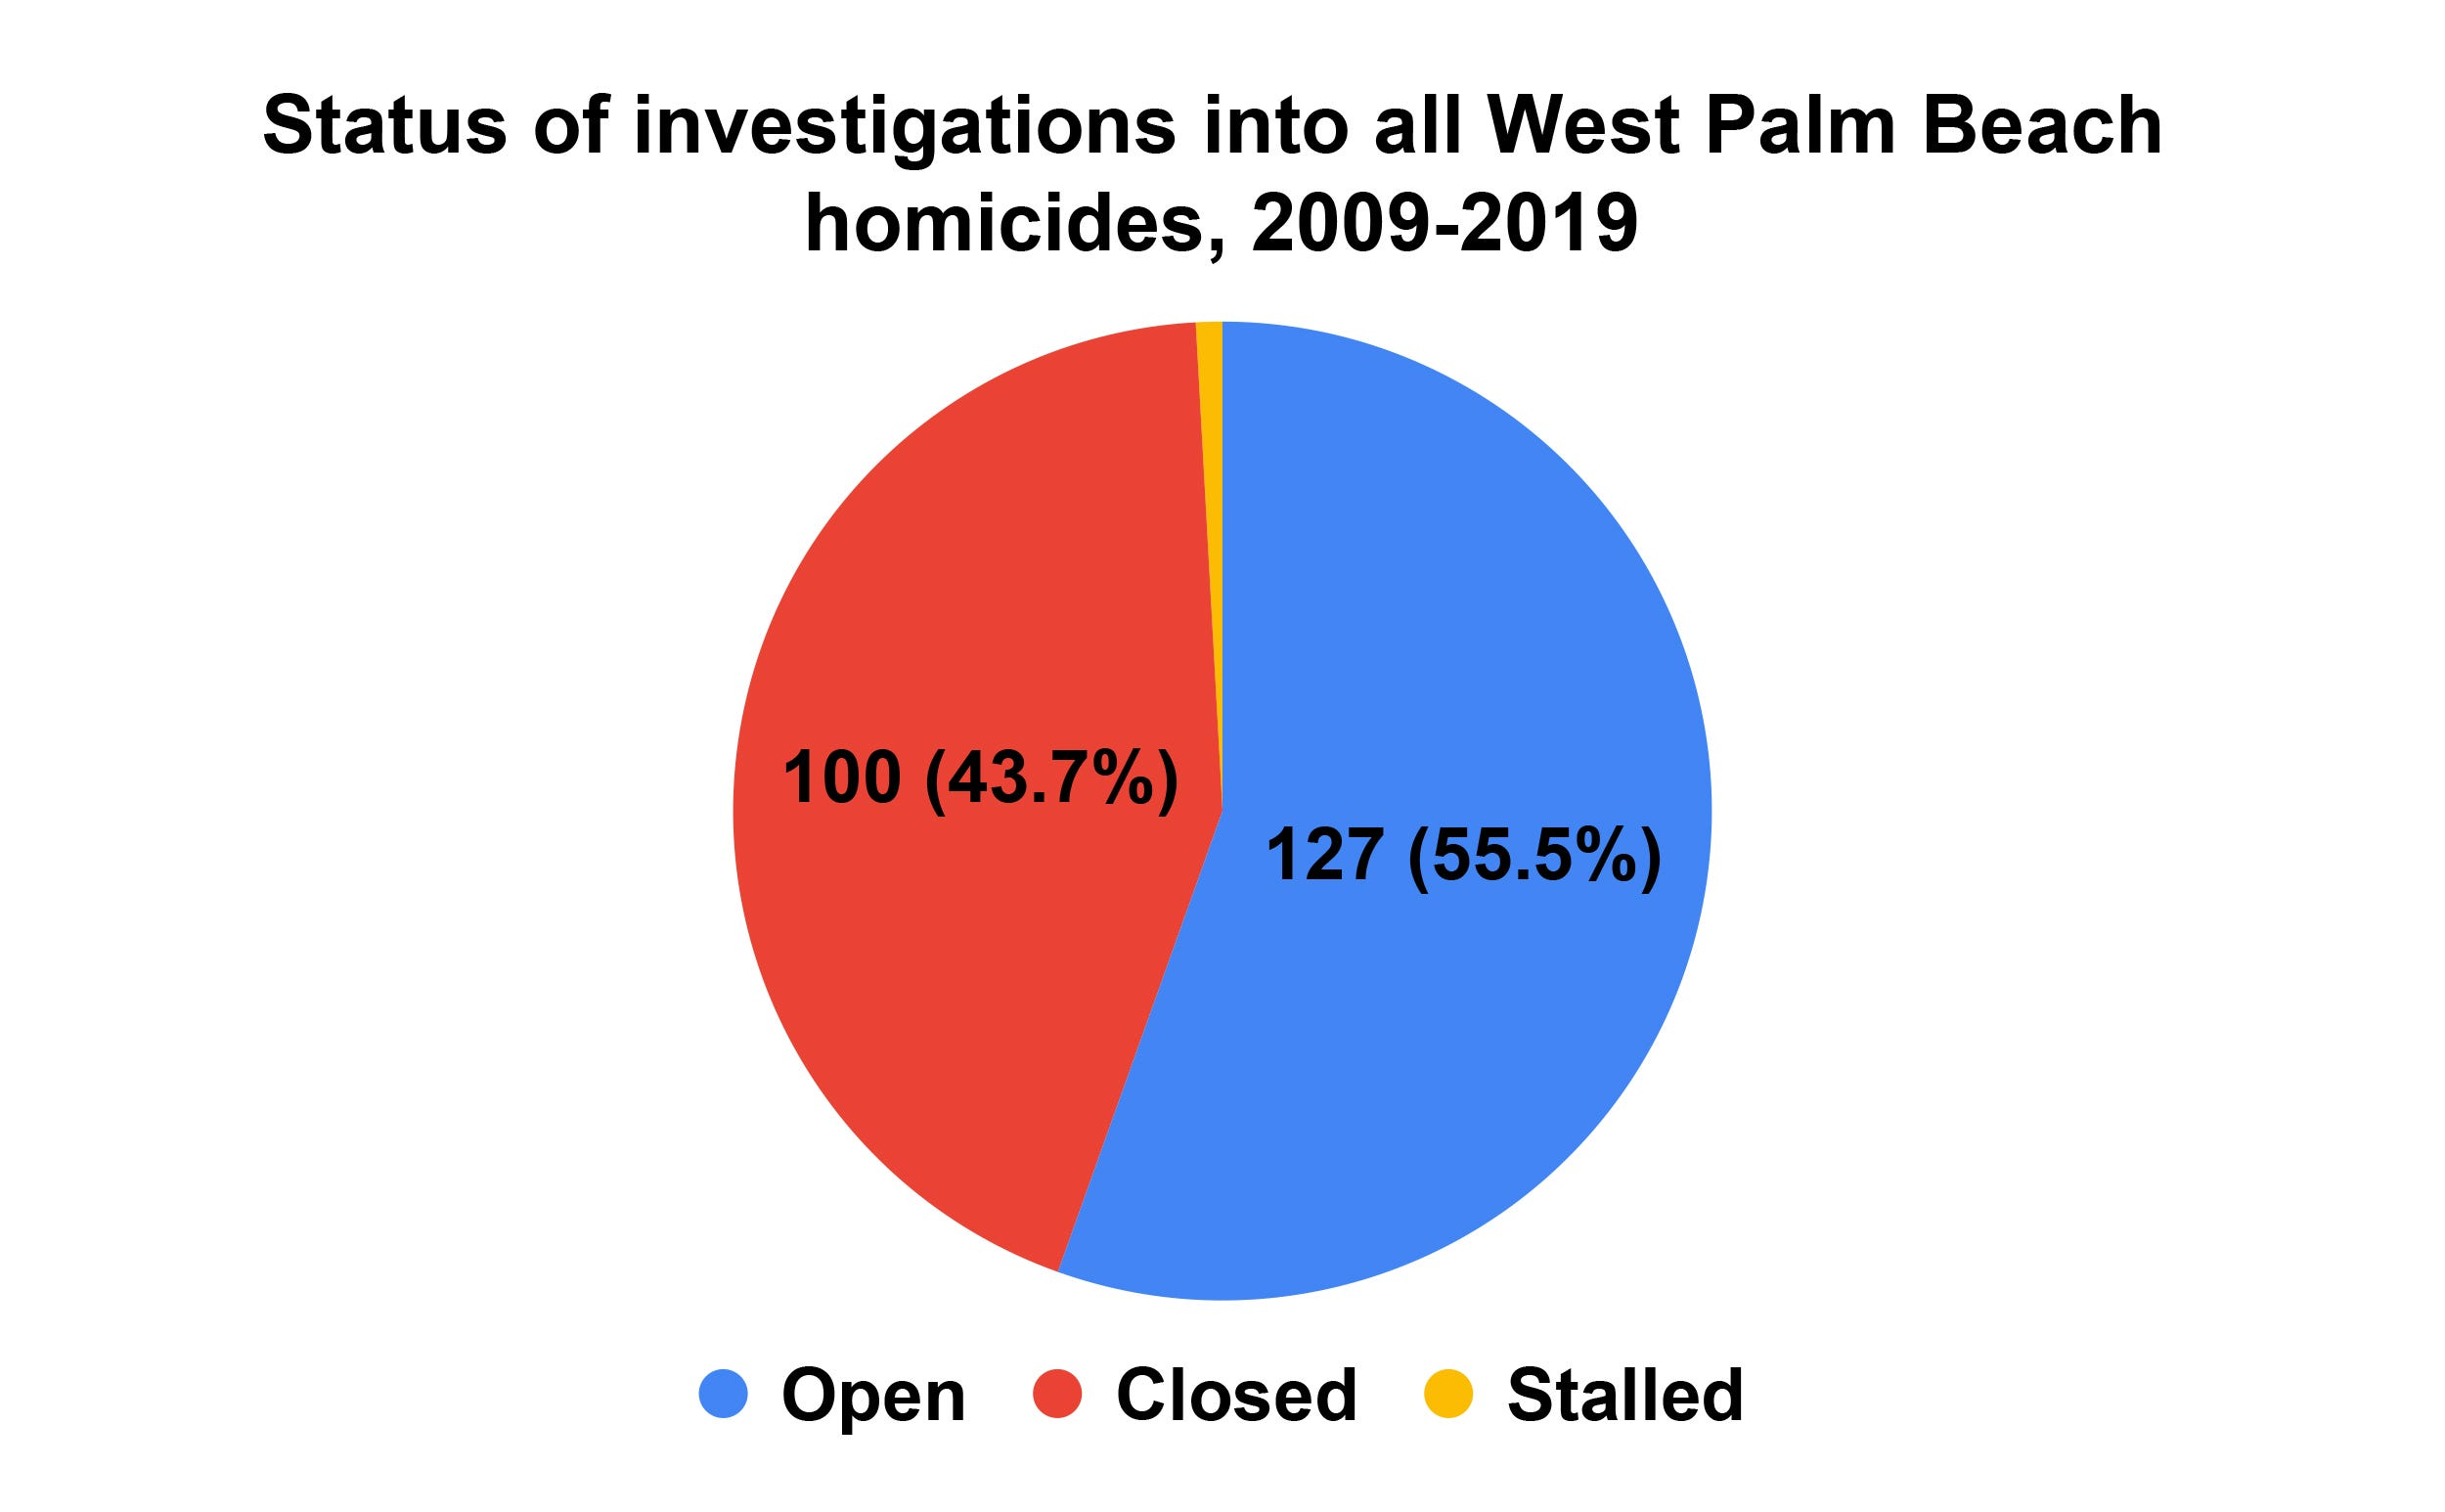 Status of investigations into all West Palm Beach homicides from 2009 to 2019.